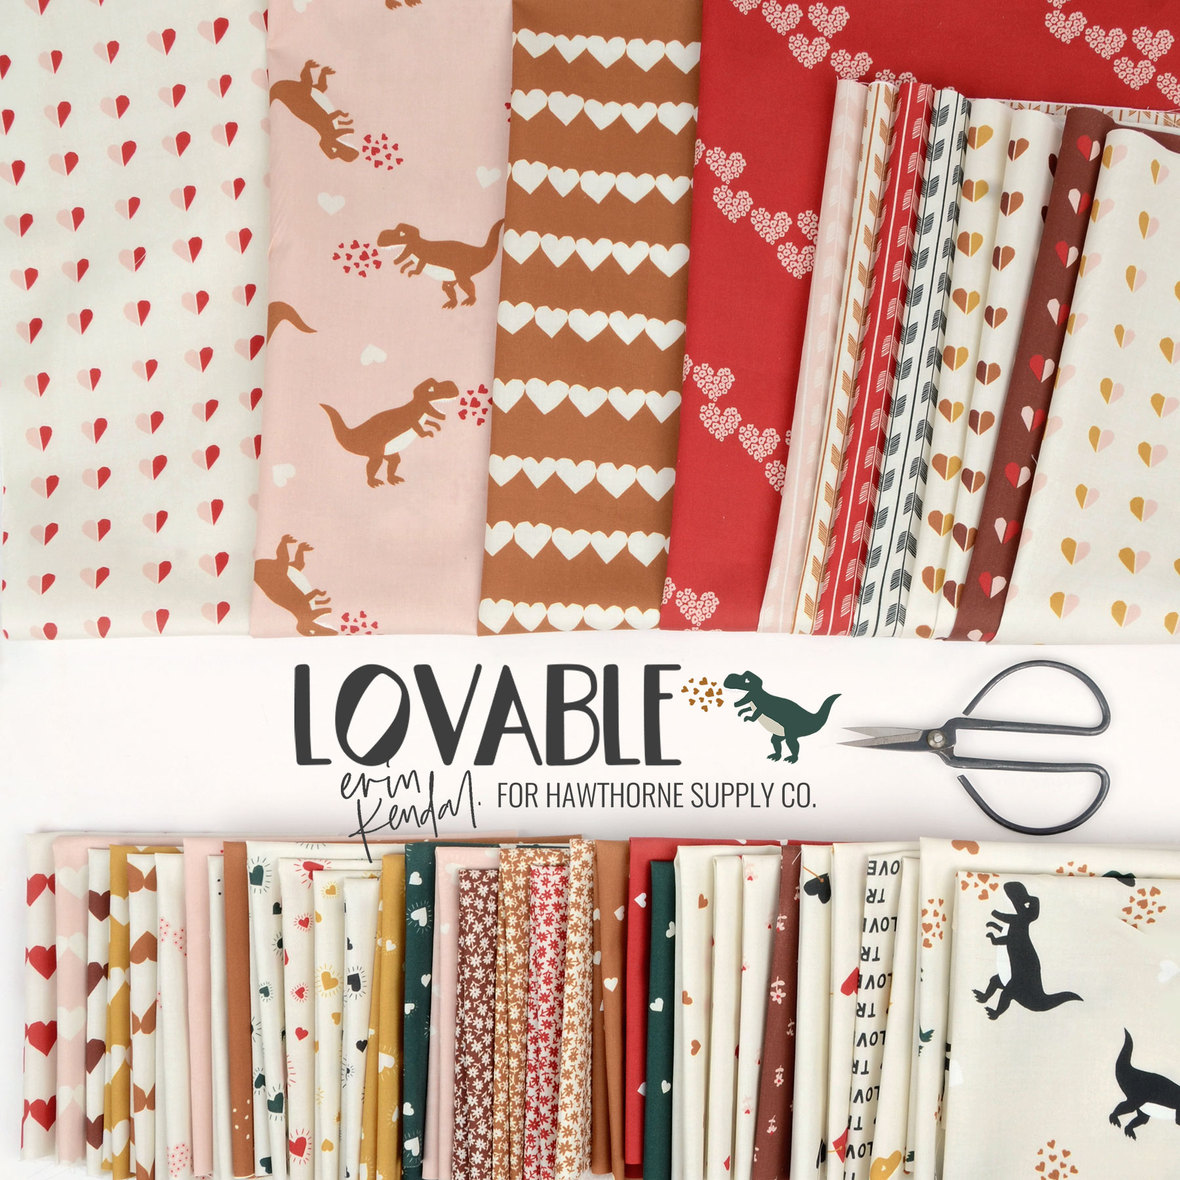 Lovable-Fabric-Erin-Kendal-for-Hawthorne-Supply-Co